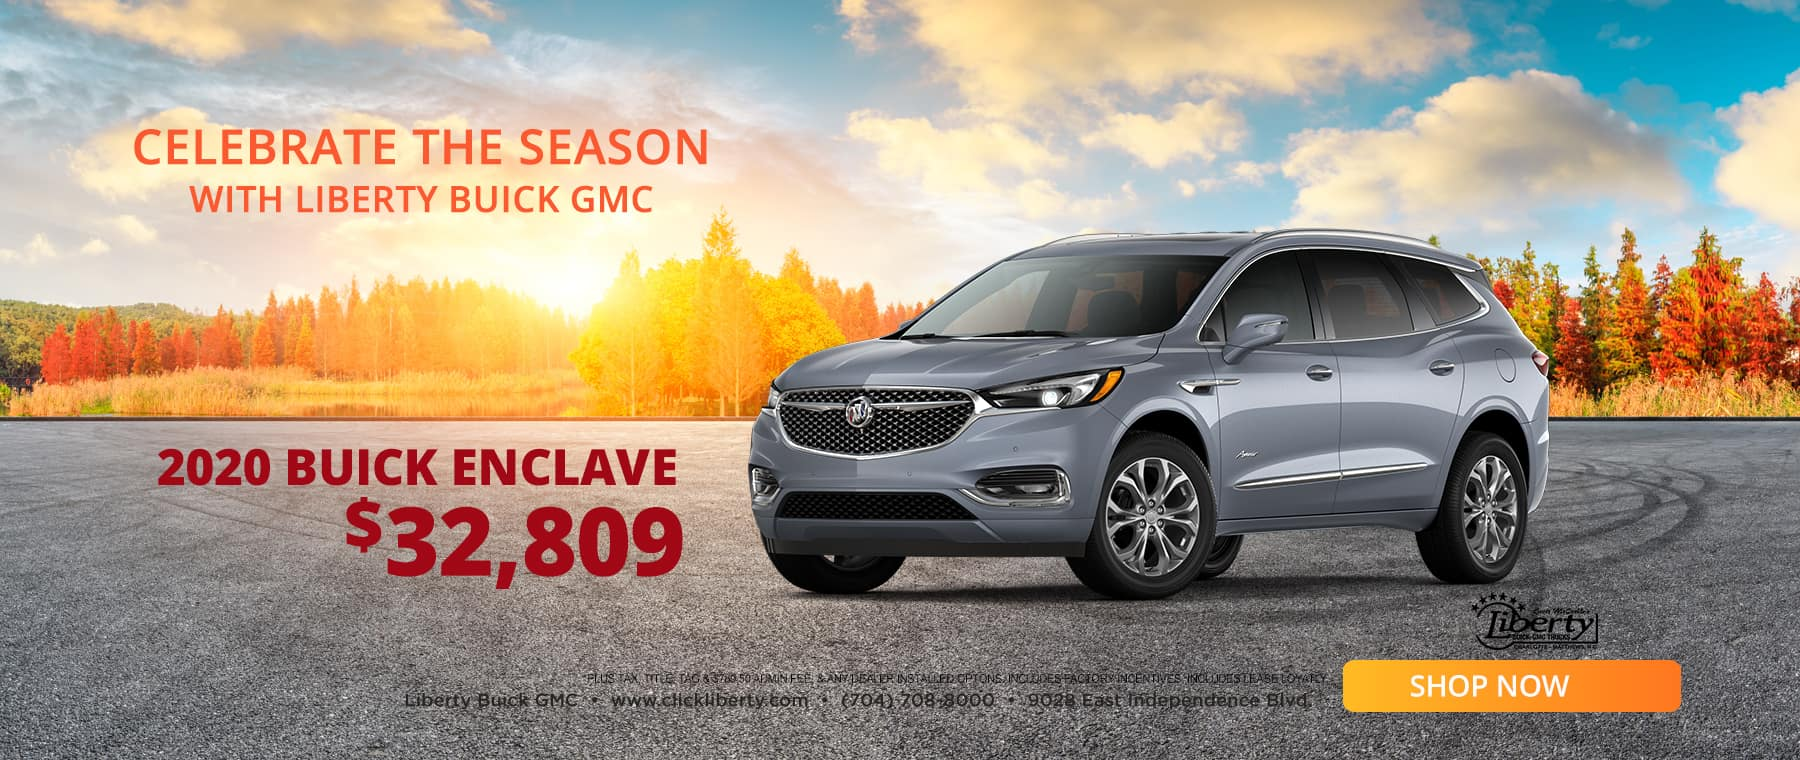 Buick Enclave On Sale Near Me - Charlotte NC